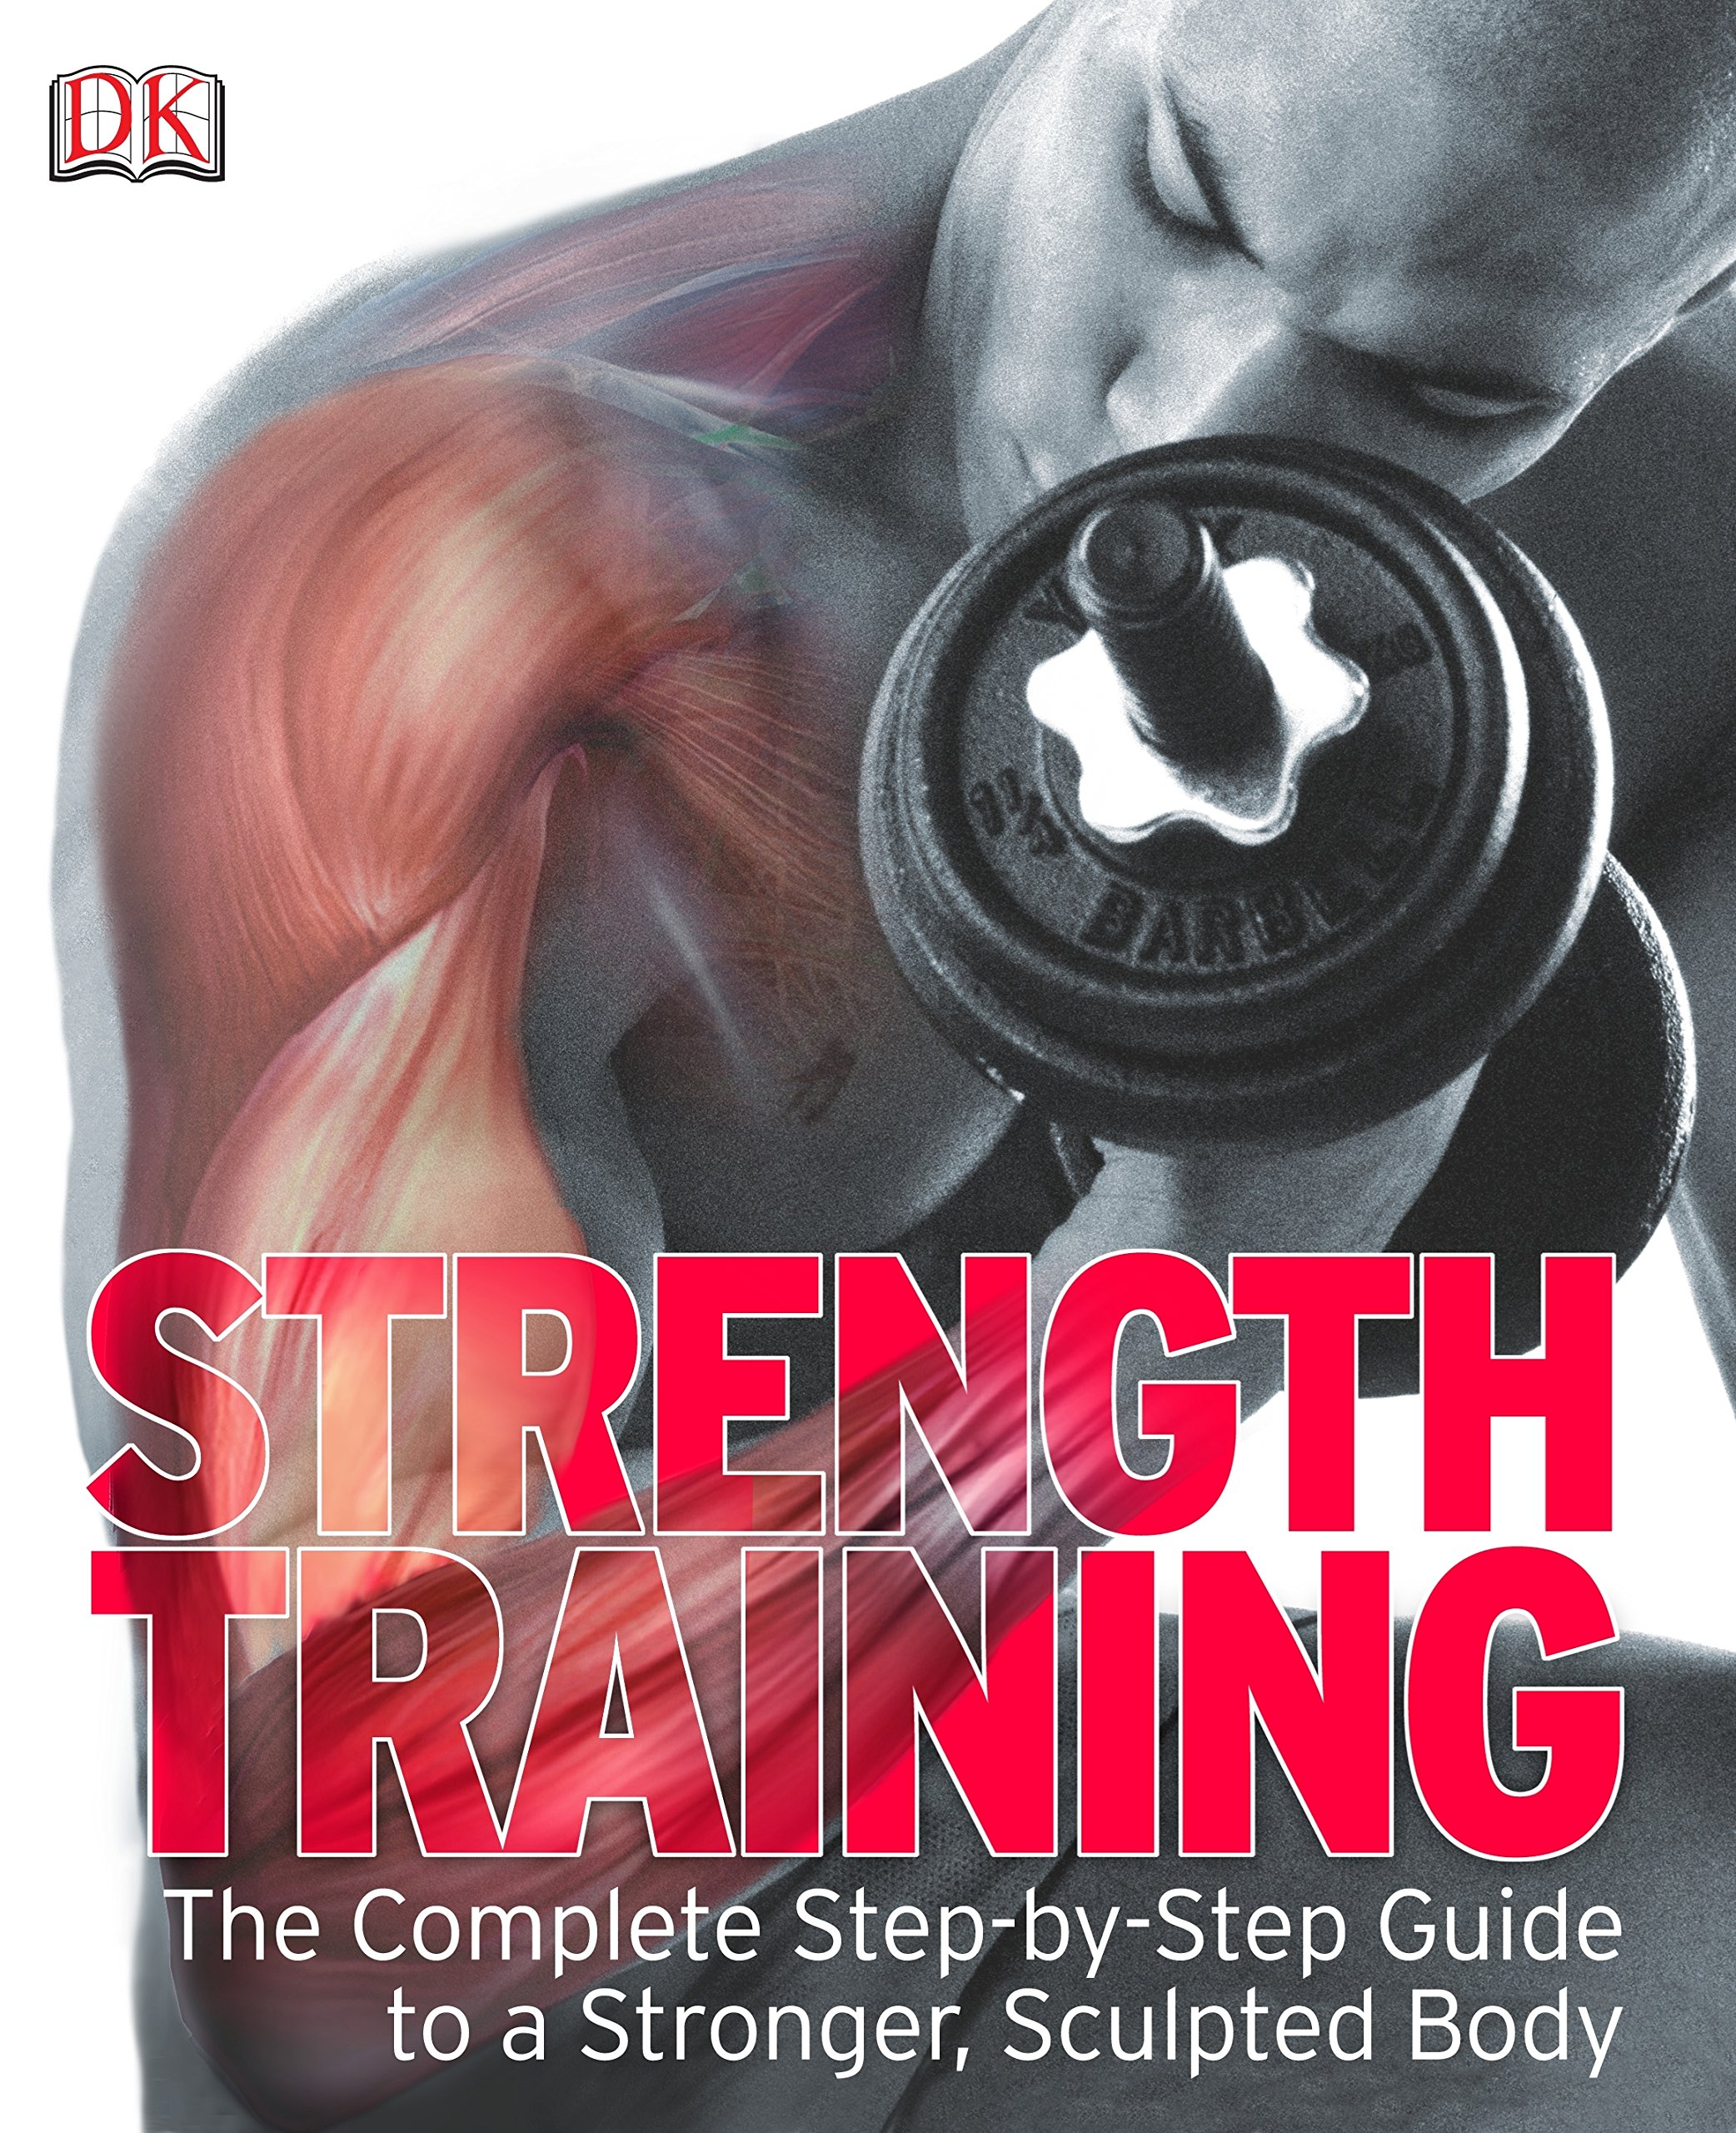 Download Strength Training: The Complete Step-by-Step Guide To A Stronger, Sculpted Body (Dk) 